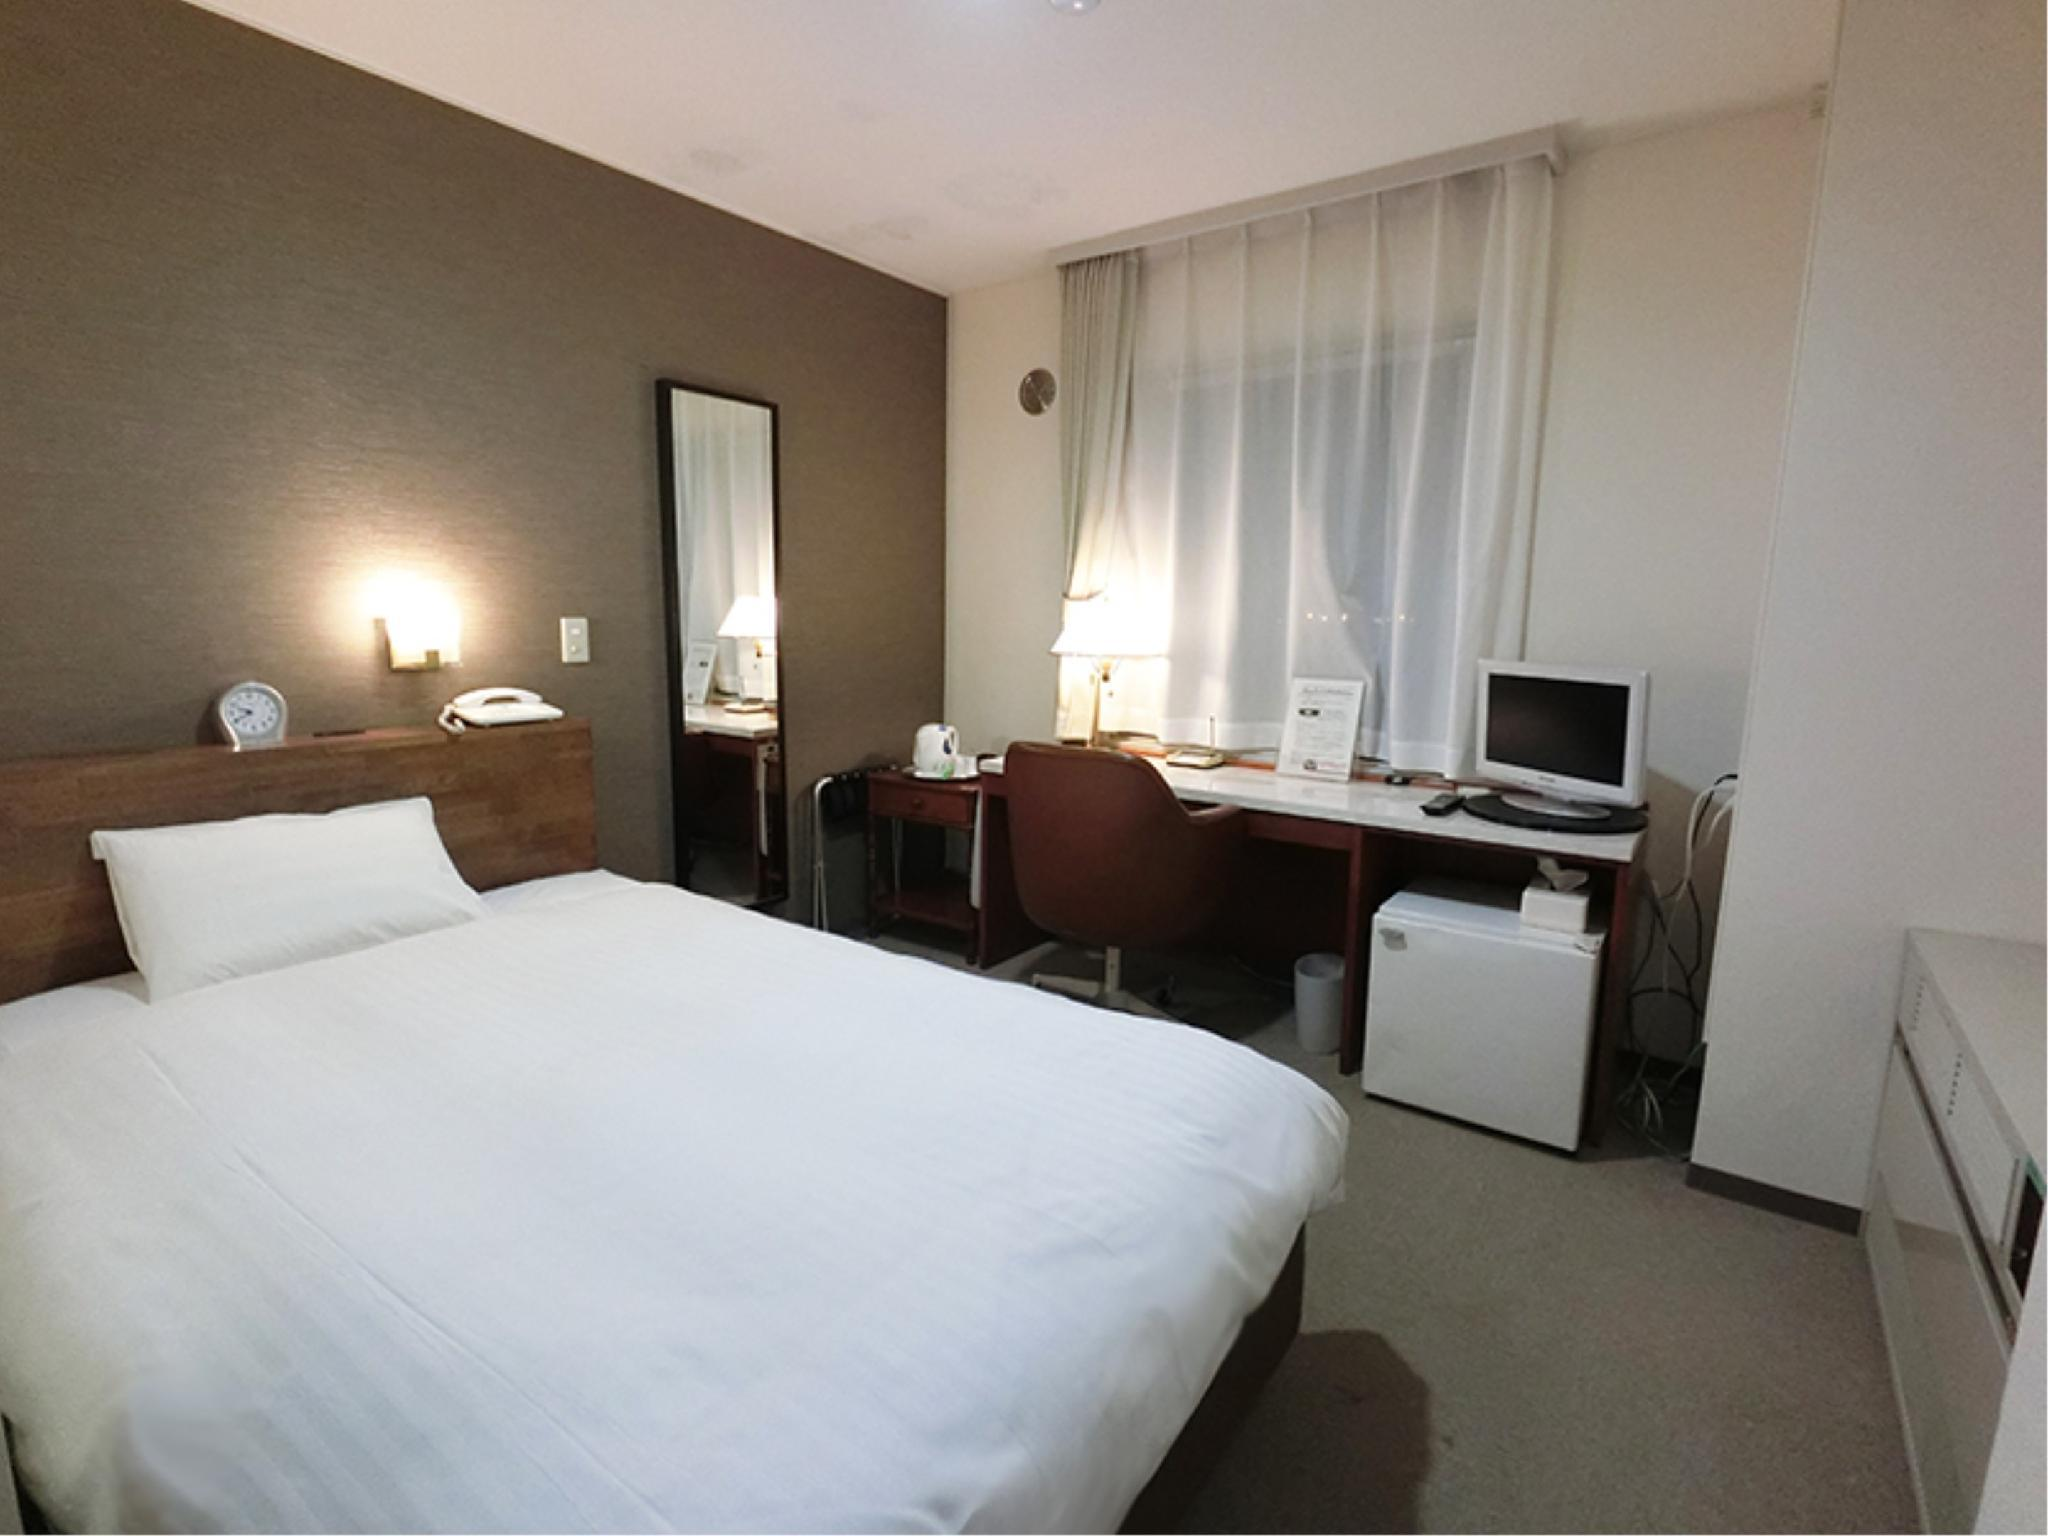 摩登雙人中床房 (Moderate Semi-double Room)